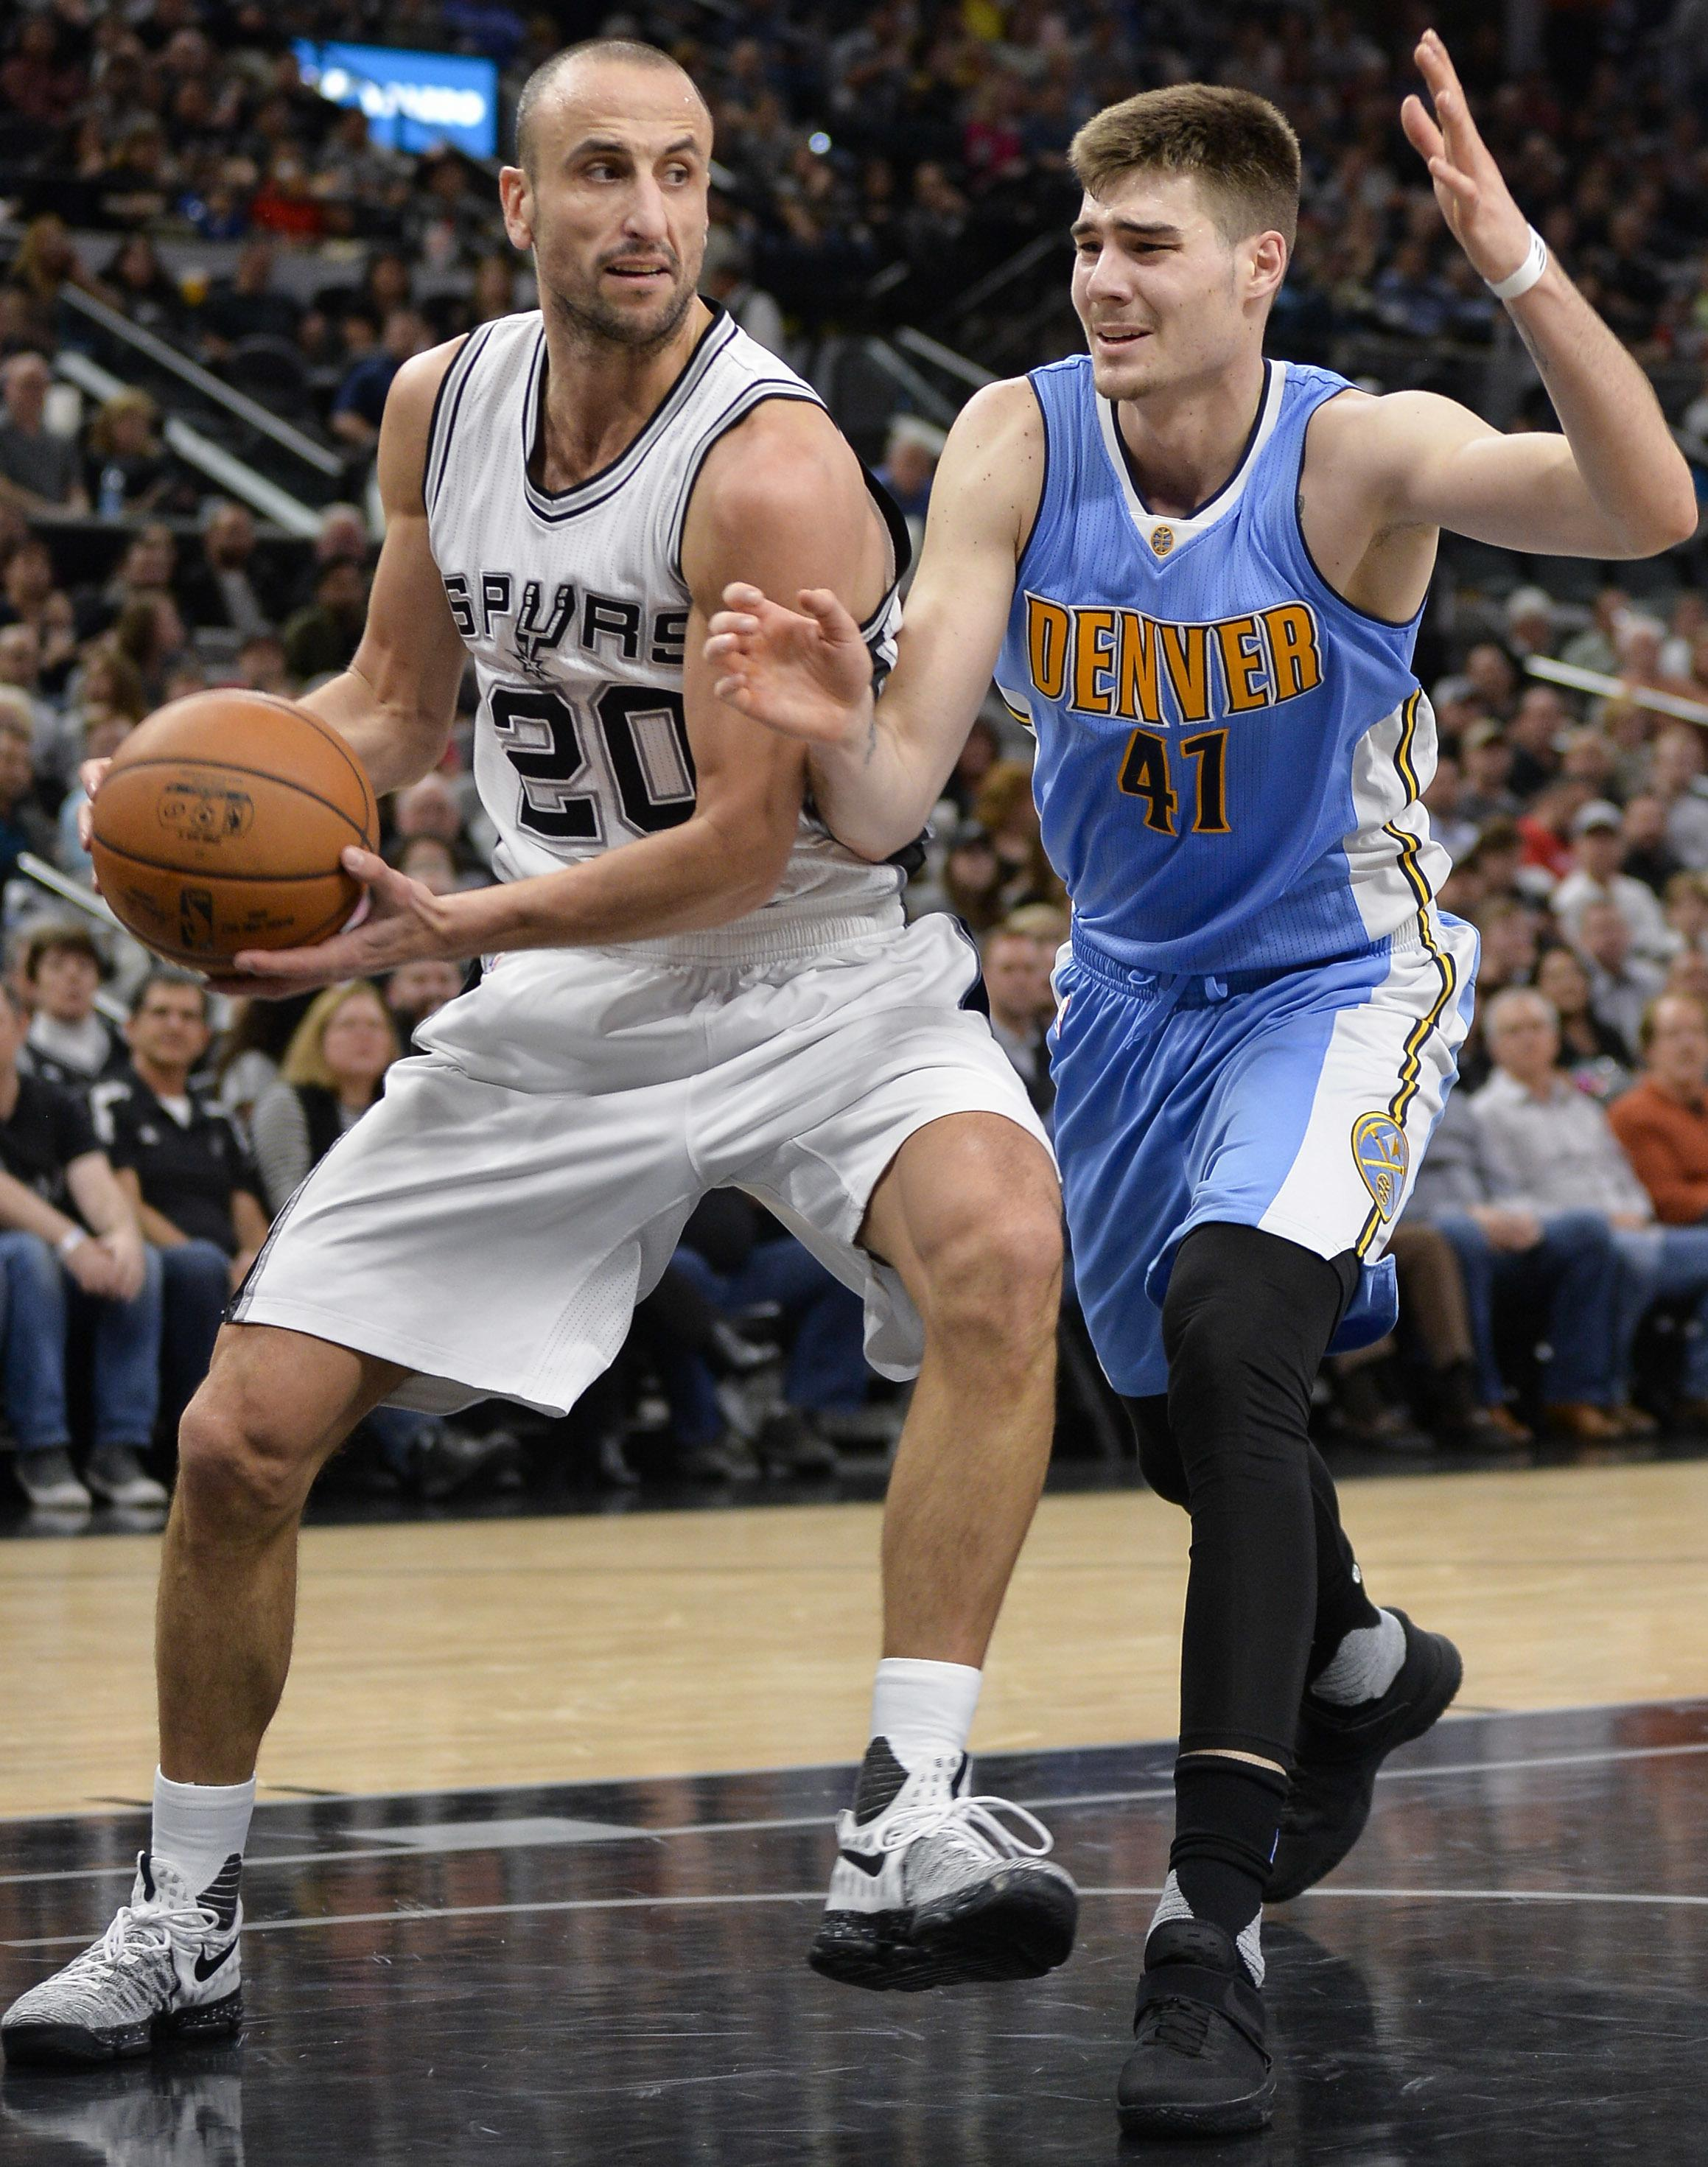 Nuggets_spurs_basketball_09926